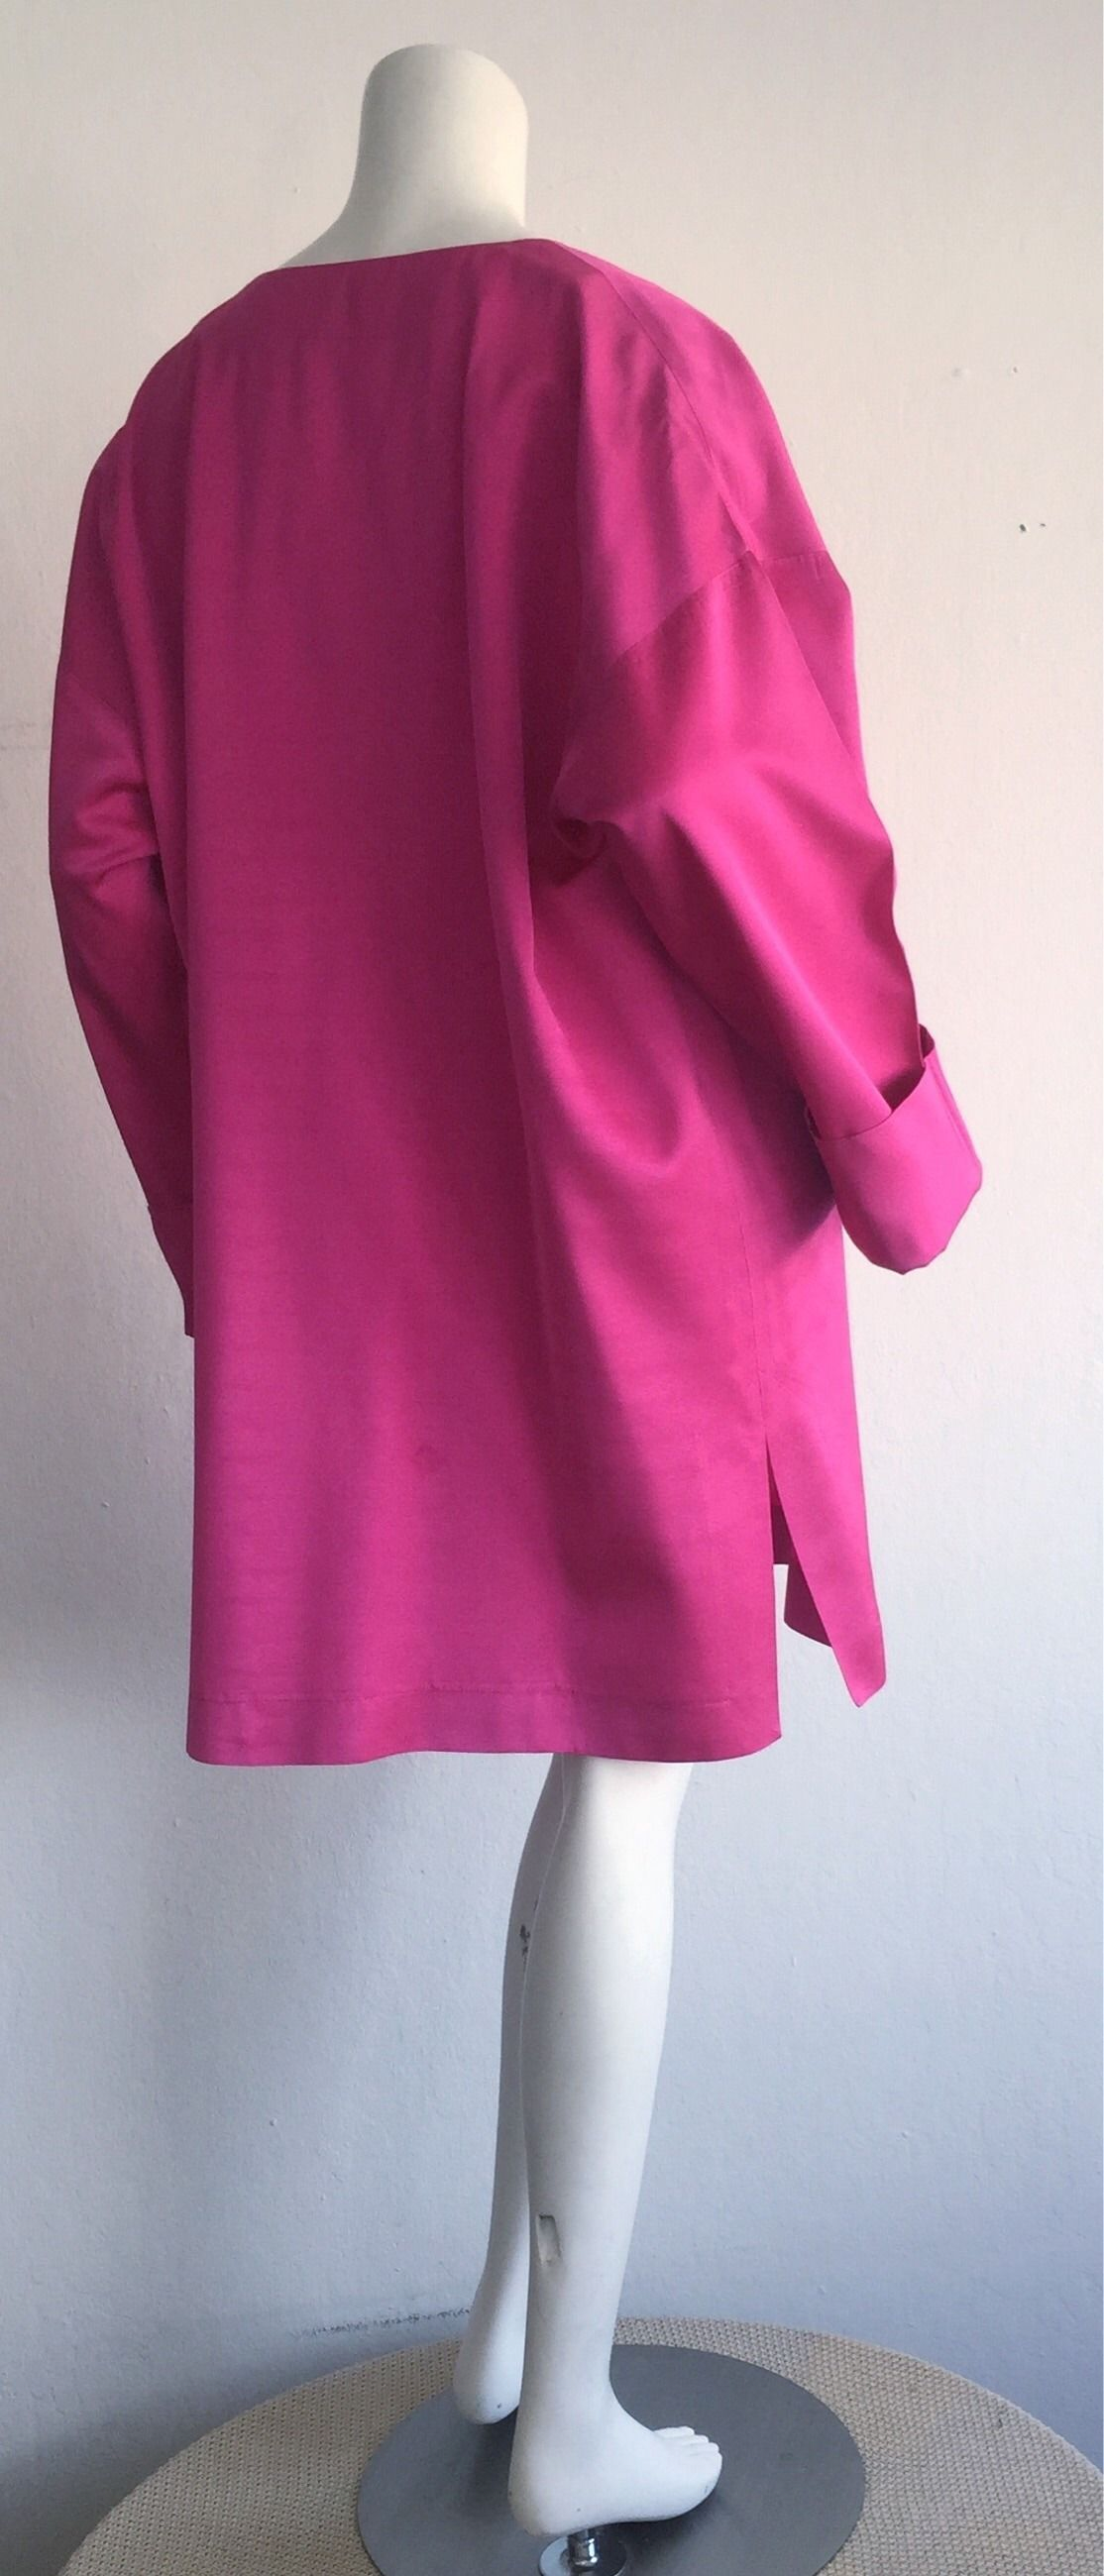 Incredible Vintage Jean Muir Hot Pink Fuchsia Silk Swing / Opera Jacket | From a collection of rare vintage jackets at https://www.1stdibs.com/fashion/clothing/jackets/